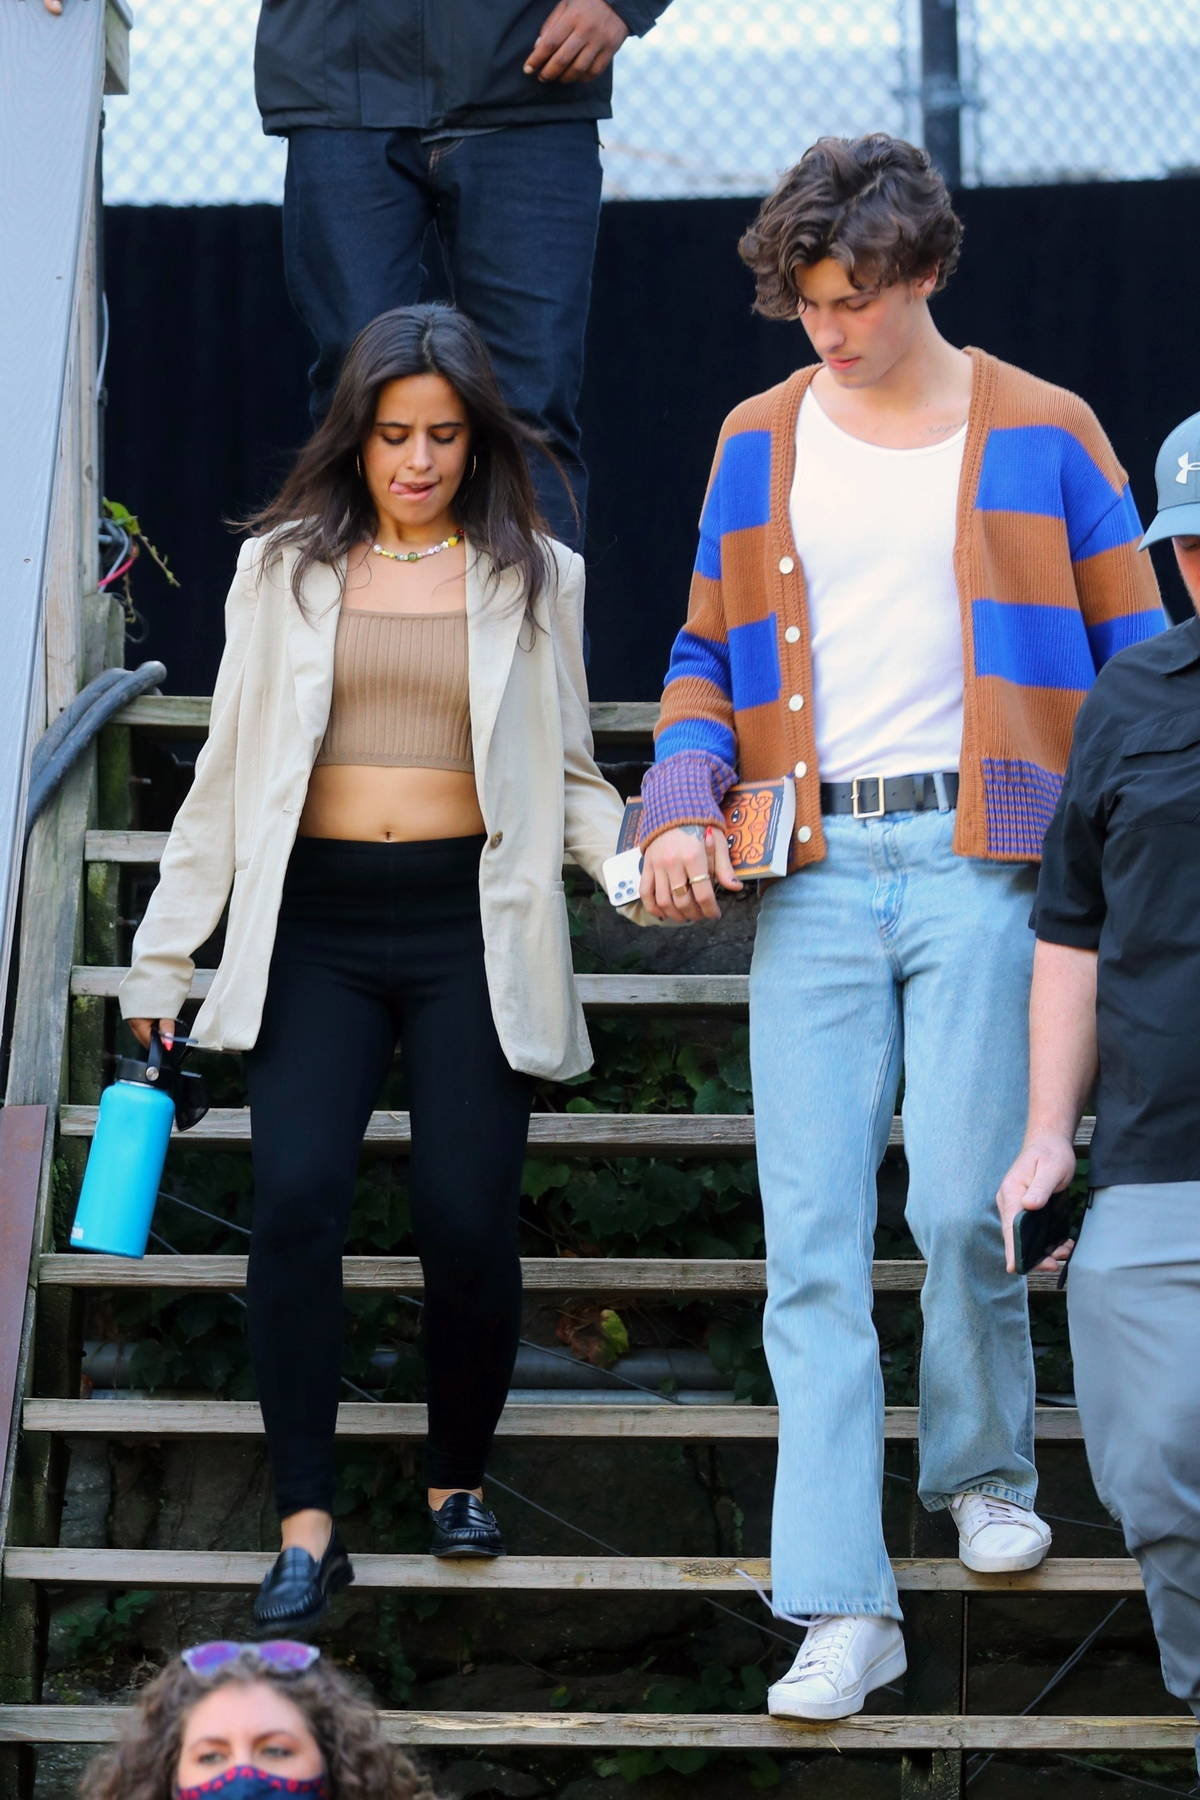 Camila Cabello and Shawn Mendes hold hands as they leave soundcheck for the Global Citizens Festival in New York City